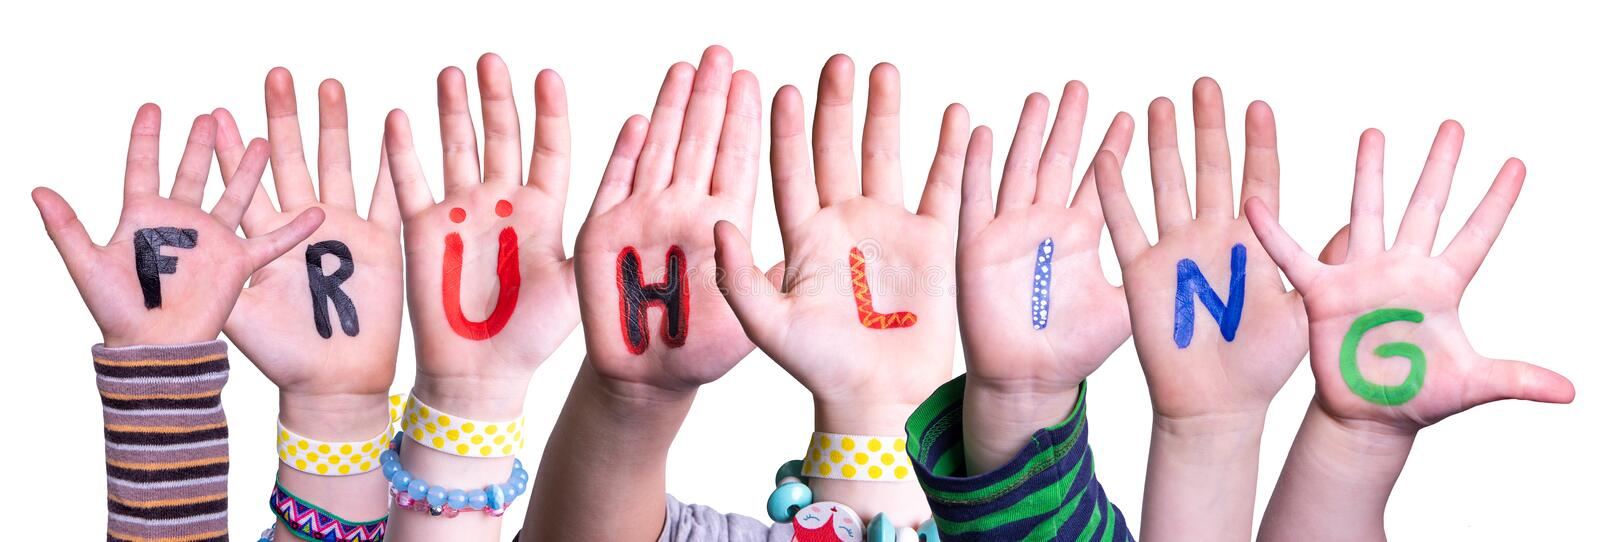 Children Hands Building Fruehling Means Spring, Isolated Background stock photography